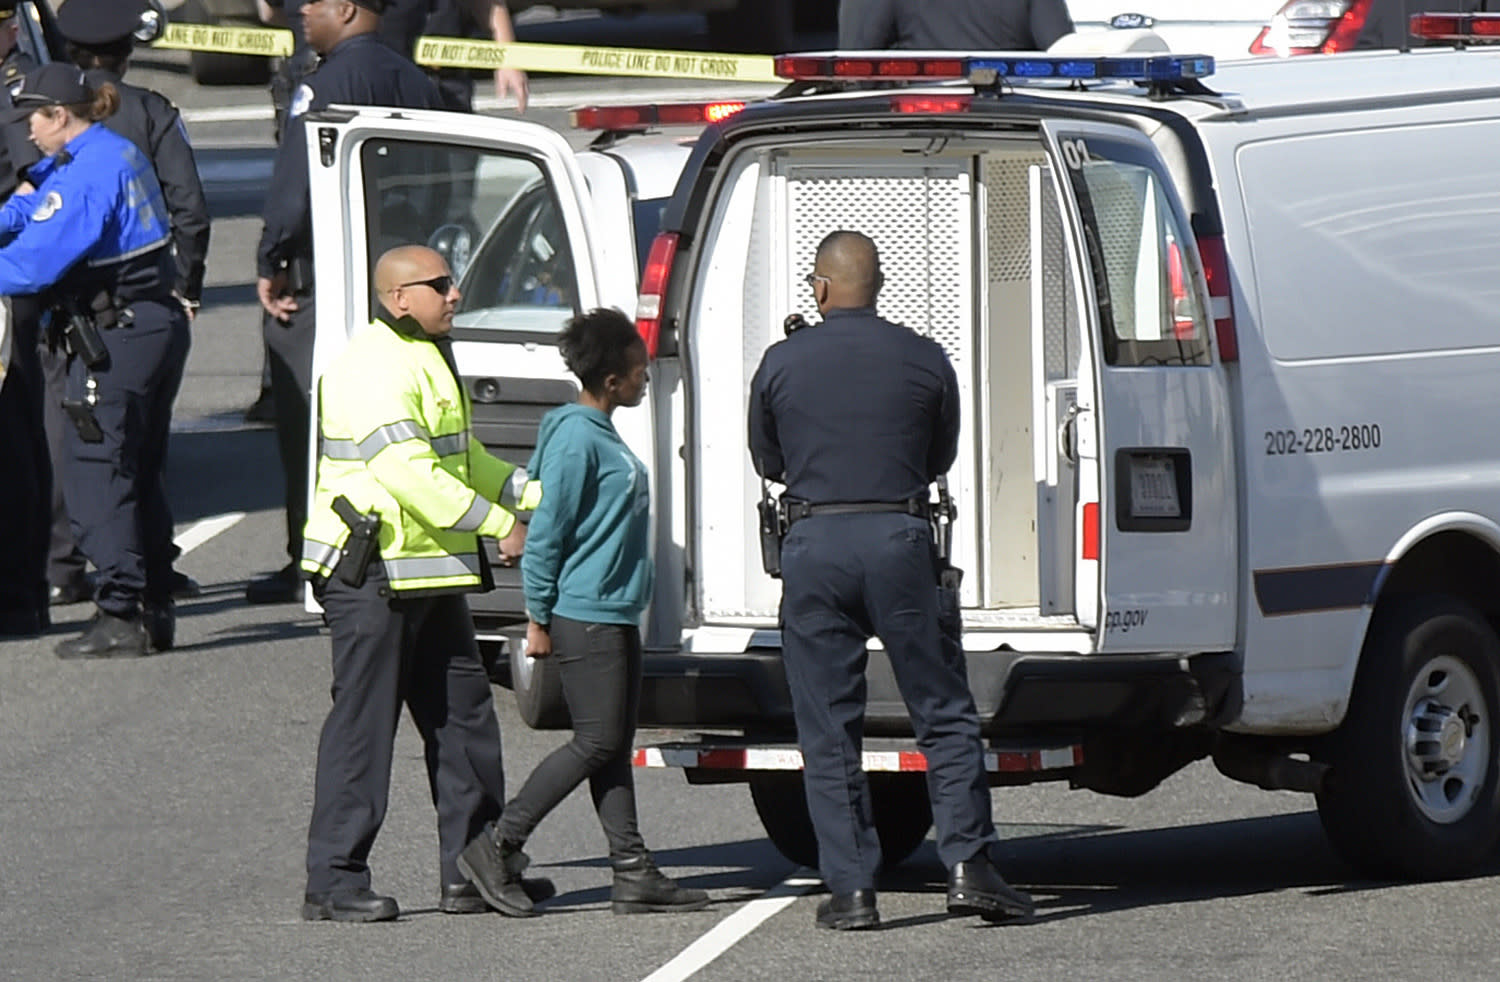 <p>A woman, center, is taken into custody on Capitol Hill in Washington, Wednesday, March 29, 2017. Police say a driver struck a U.S. Capitol Police cruiser near the U.S. Capitol and was taken into custody. (AP Photo/Susan Walsh) </p>